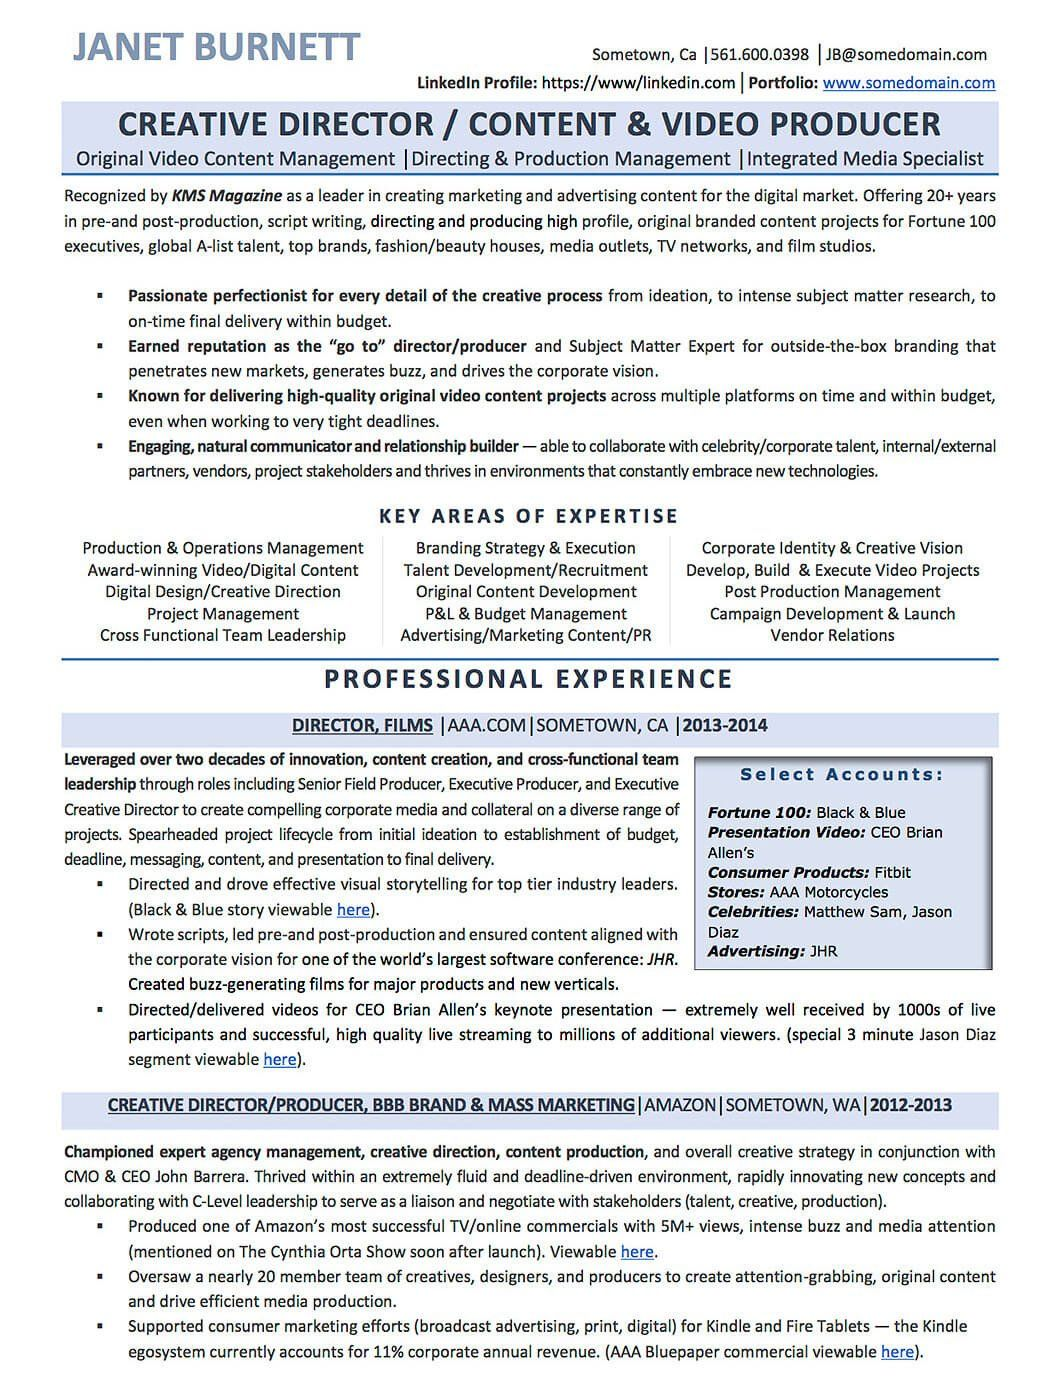 Creative Director Resume Sample Resume Examples Cv Sample Resume Templates Rso Resumes